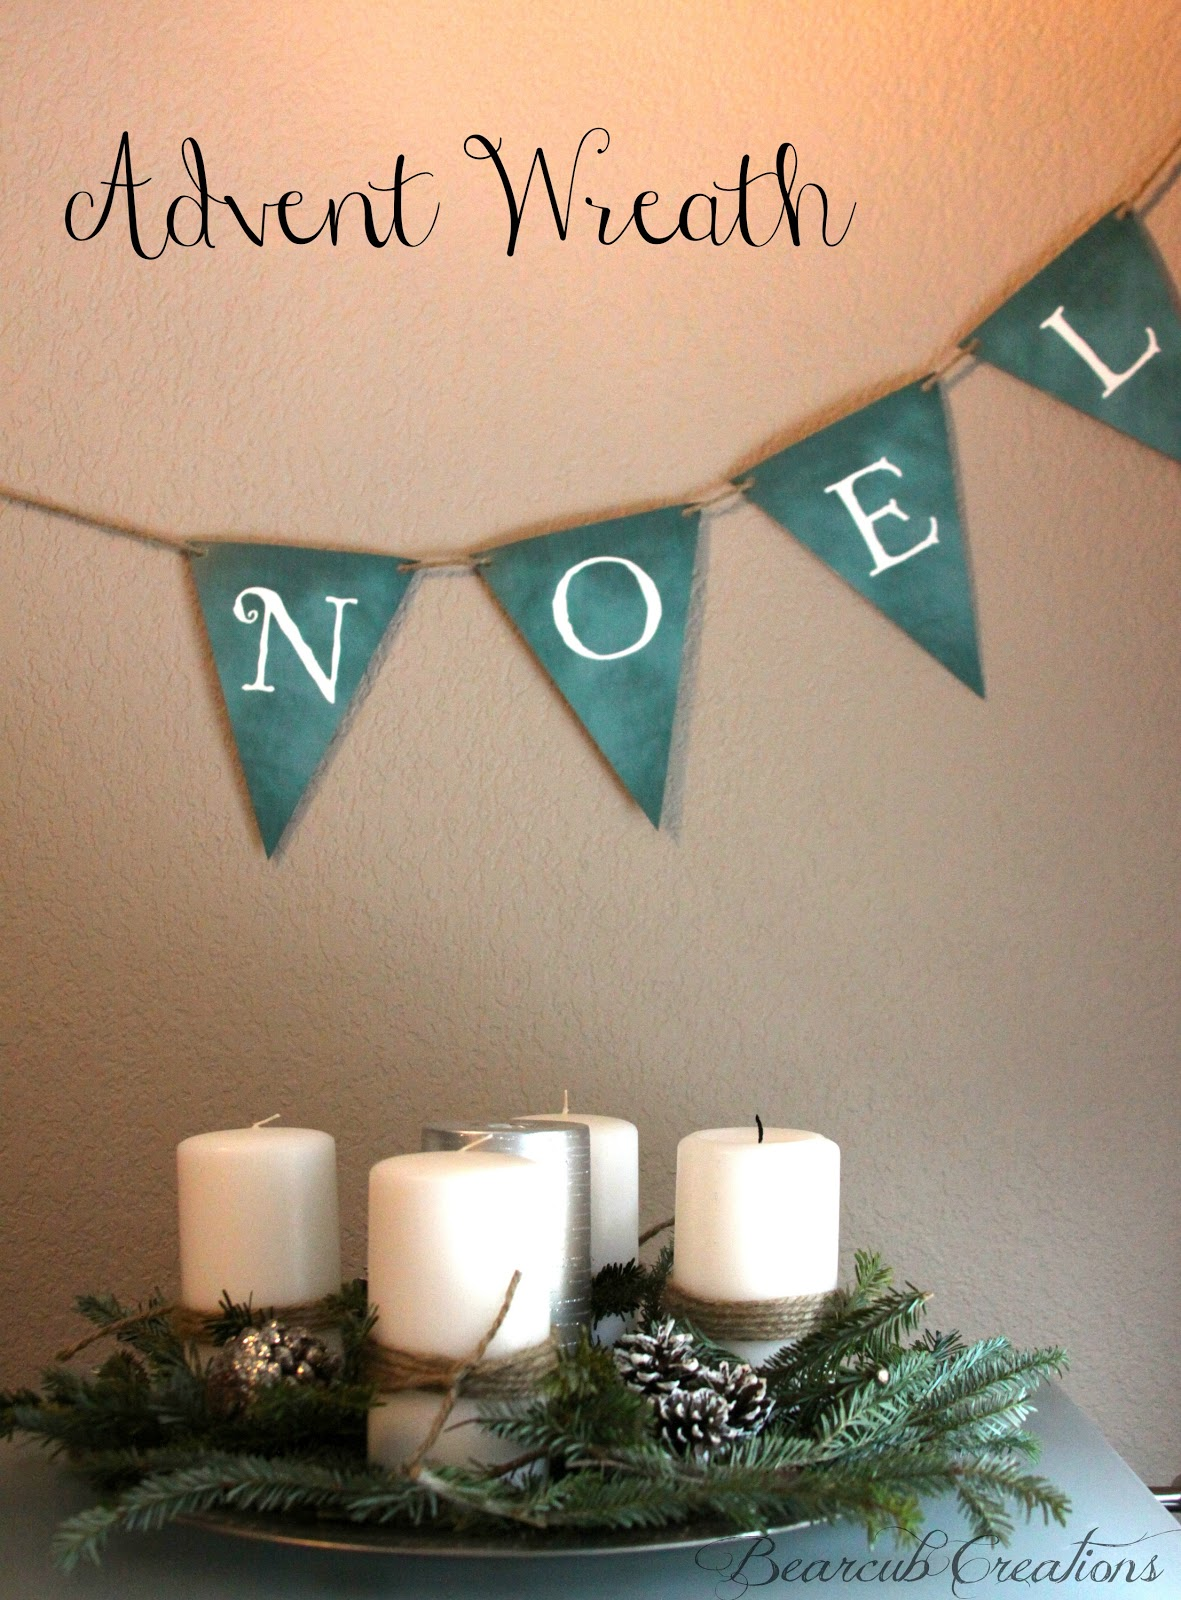 Bearcub Creations Traditions Advent Wreath And Printable